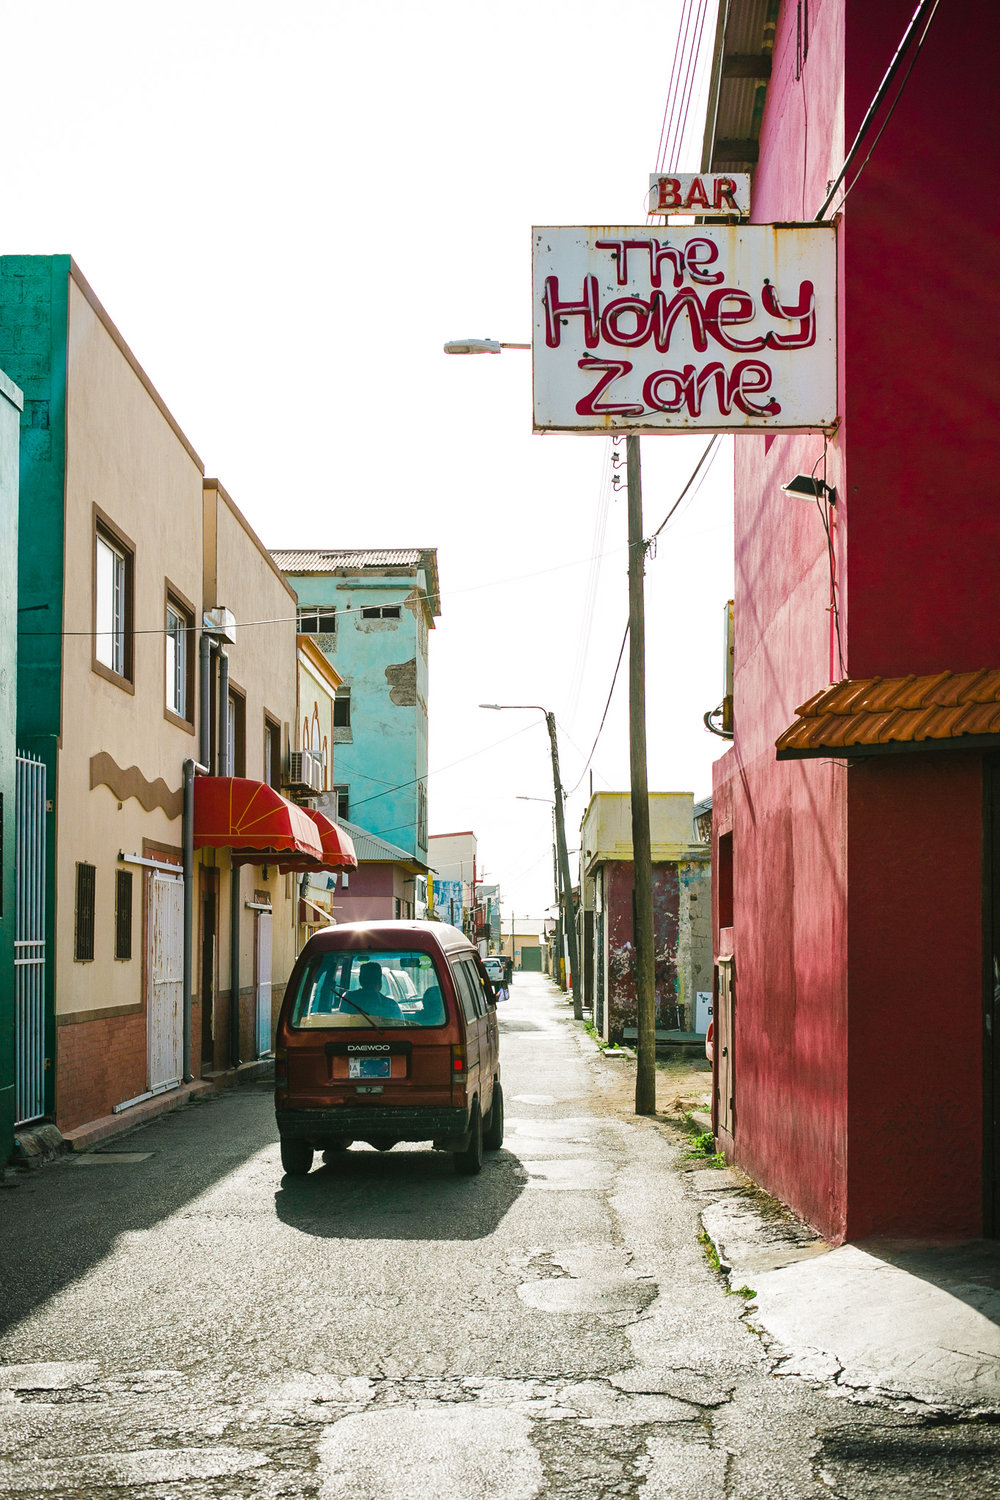 The Honey Zone in San Nicolas Aruba   I don't think they sell legit honey if ya know what I mean.